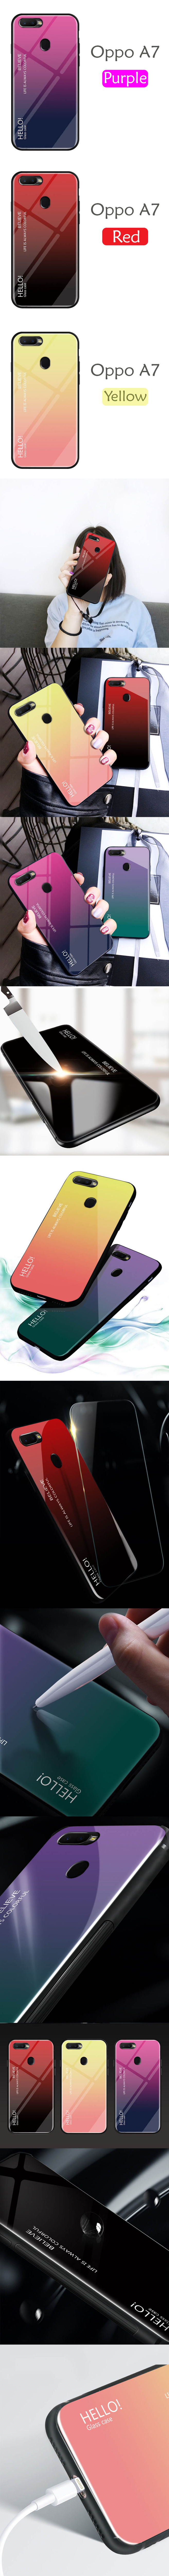 Carristoeshop Oppo A77/Oppo A83/Oppo A3S/Oppo A7 Case (3 Colors)